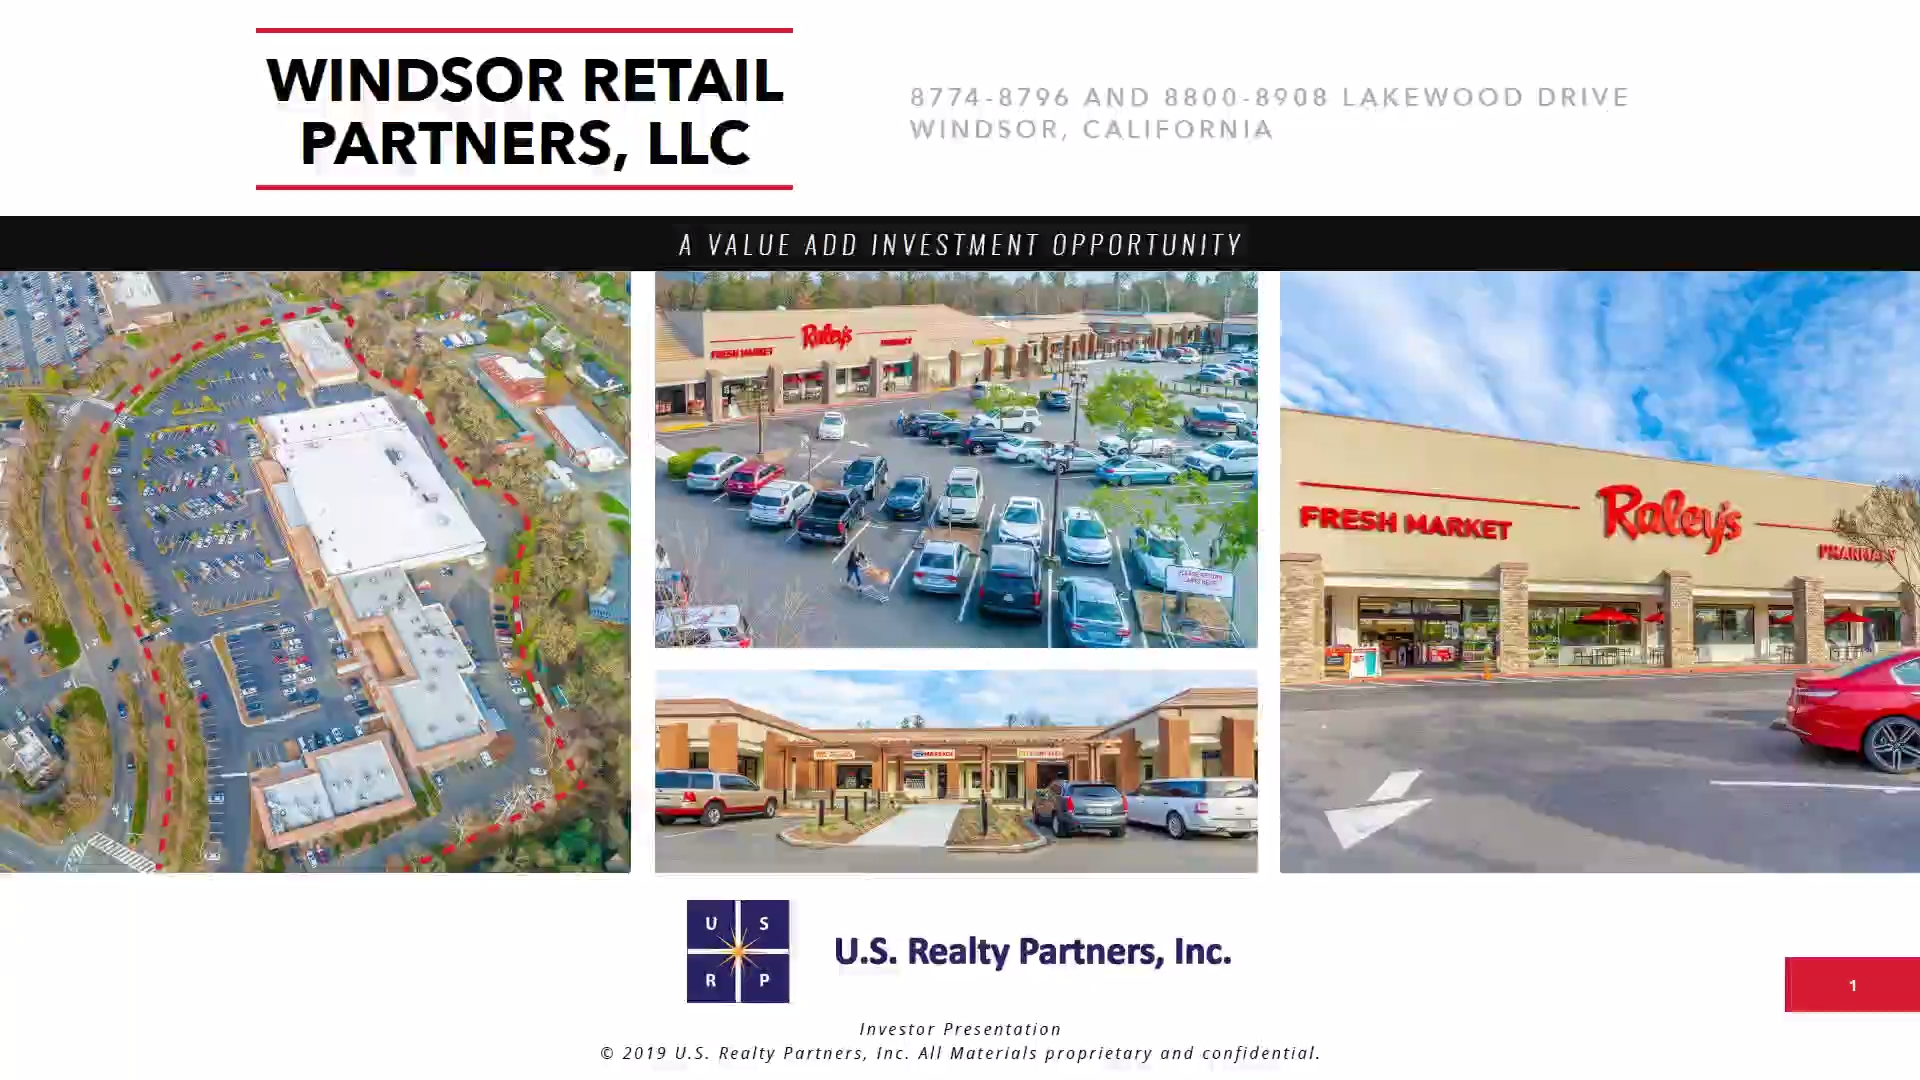 Investment Video - Windsor Retail Partners, LLC